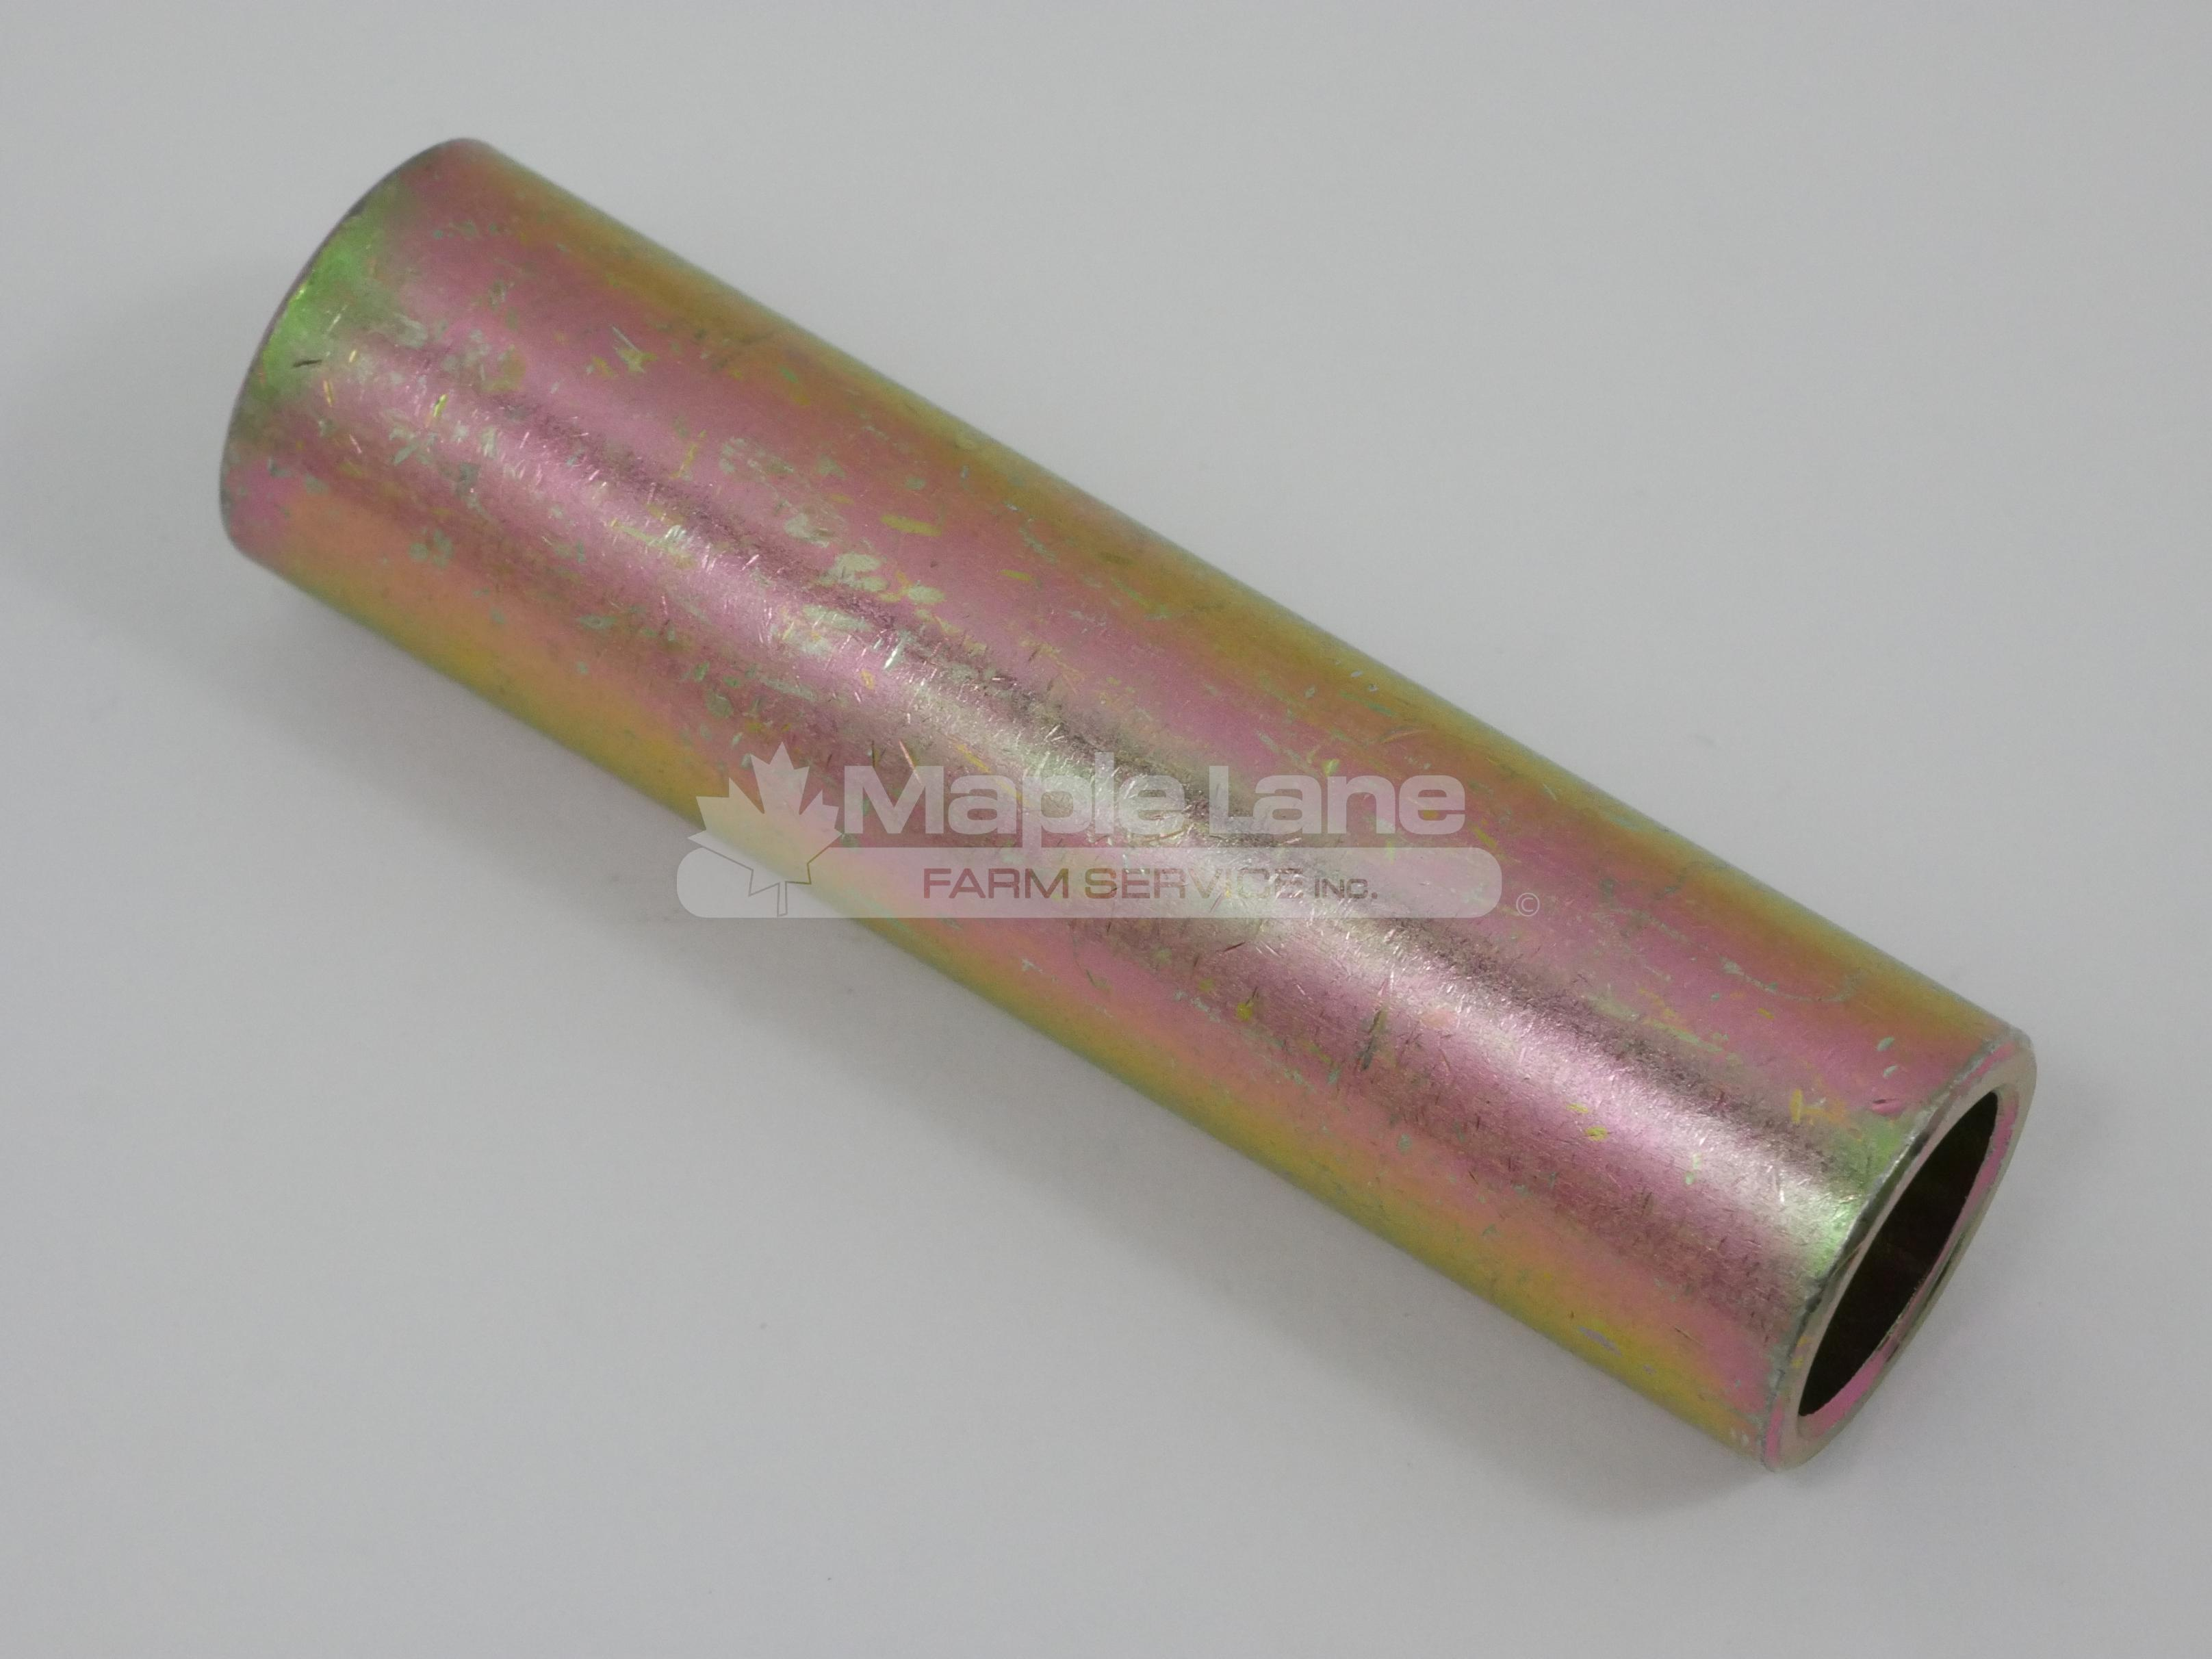 186231 Pipe